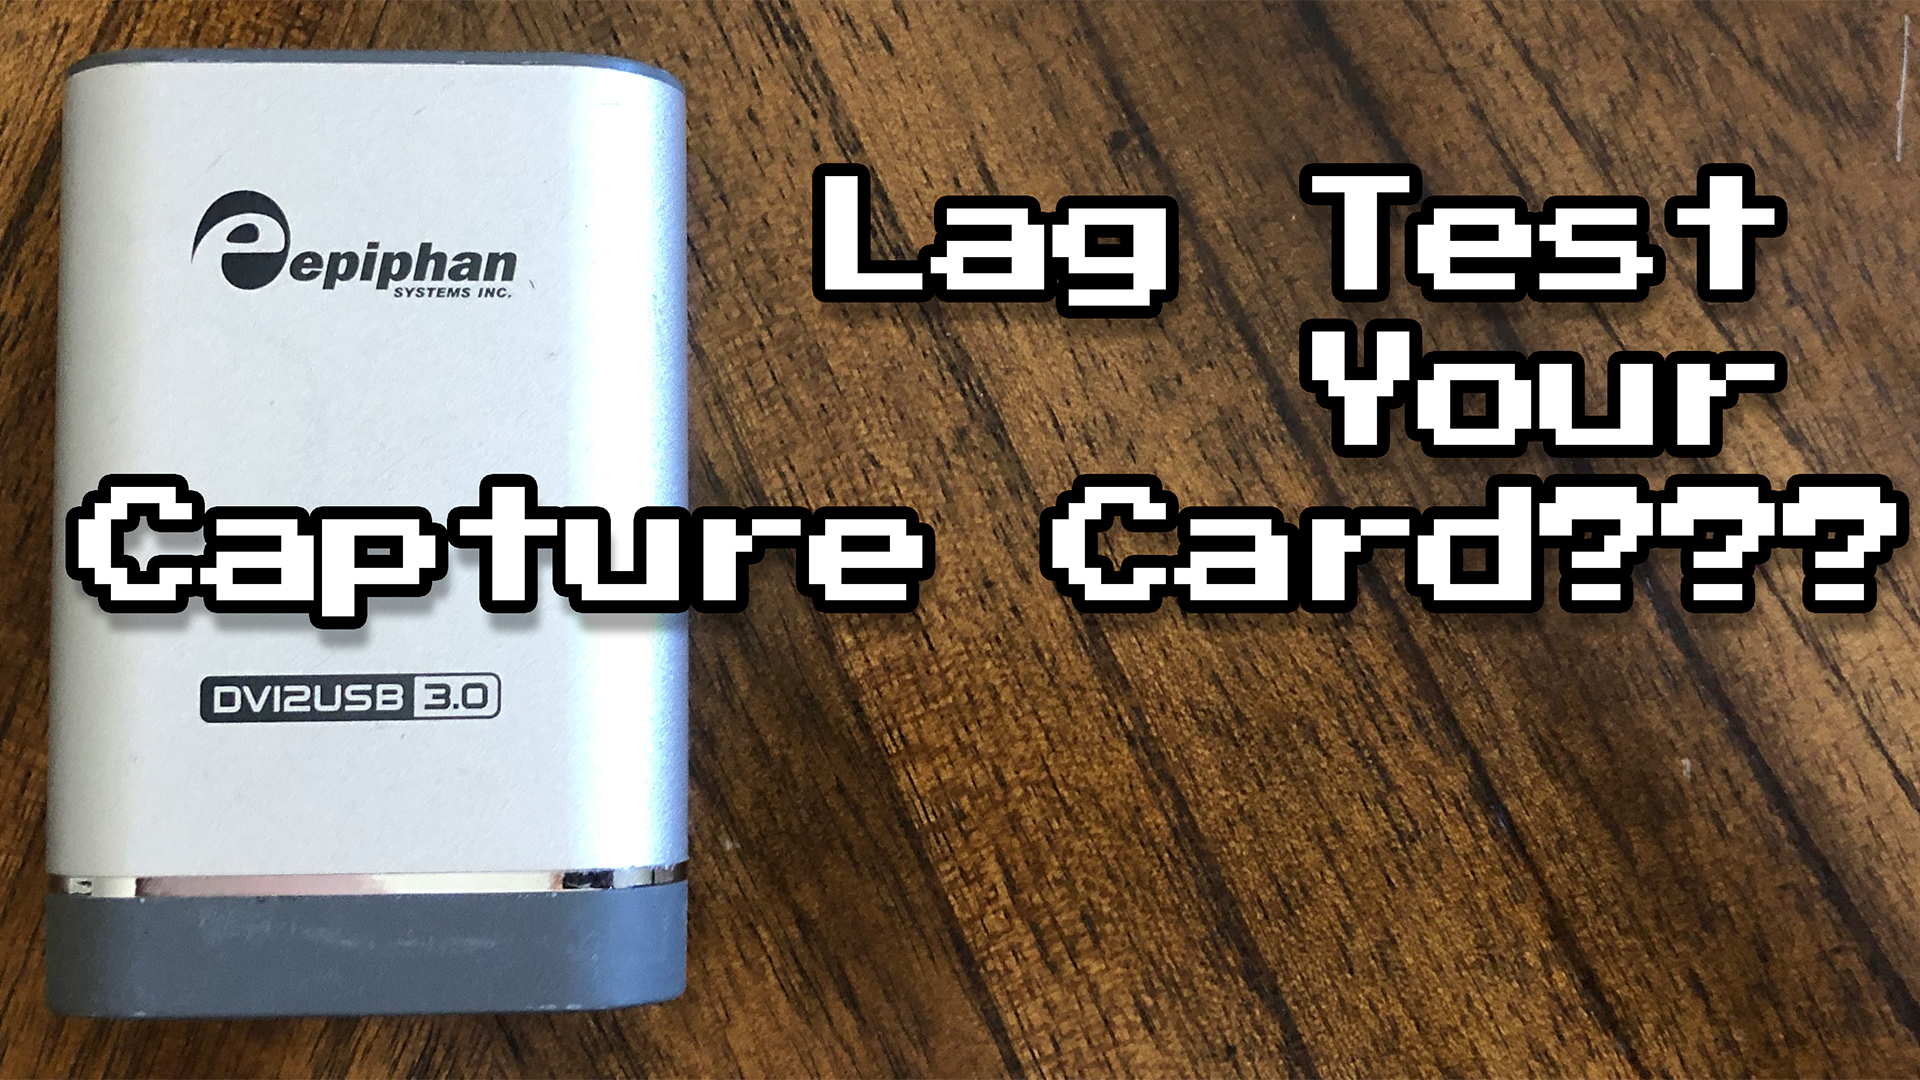 Testing A/V Delay in Capture Cards